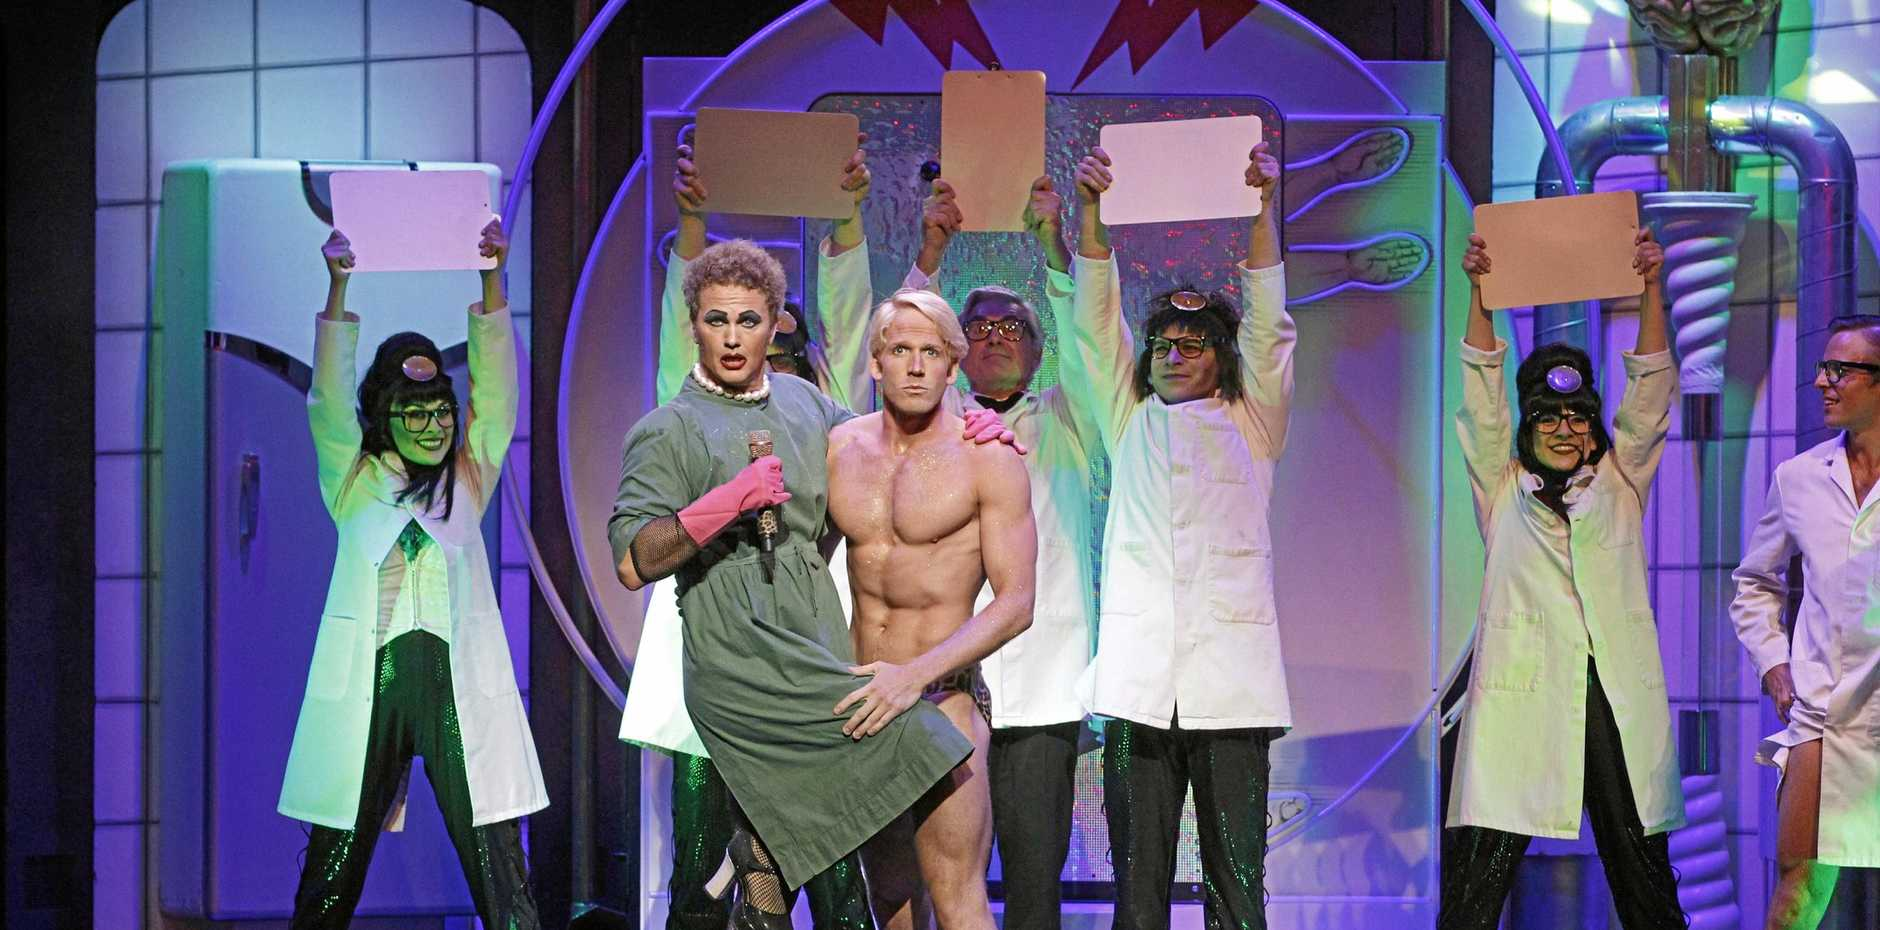 Craig McLachlan and Brendan Irving ham it up in The Rocky Horror Picture Show, which returns to QPAC this month.